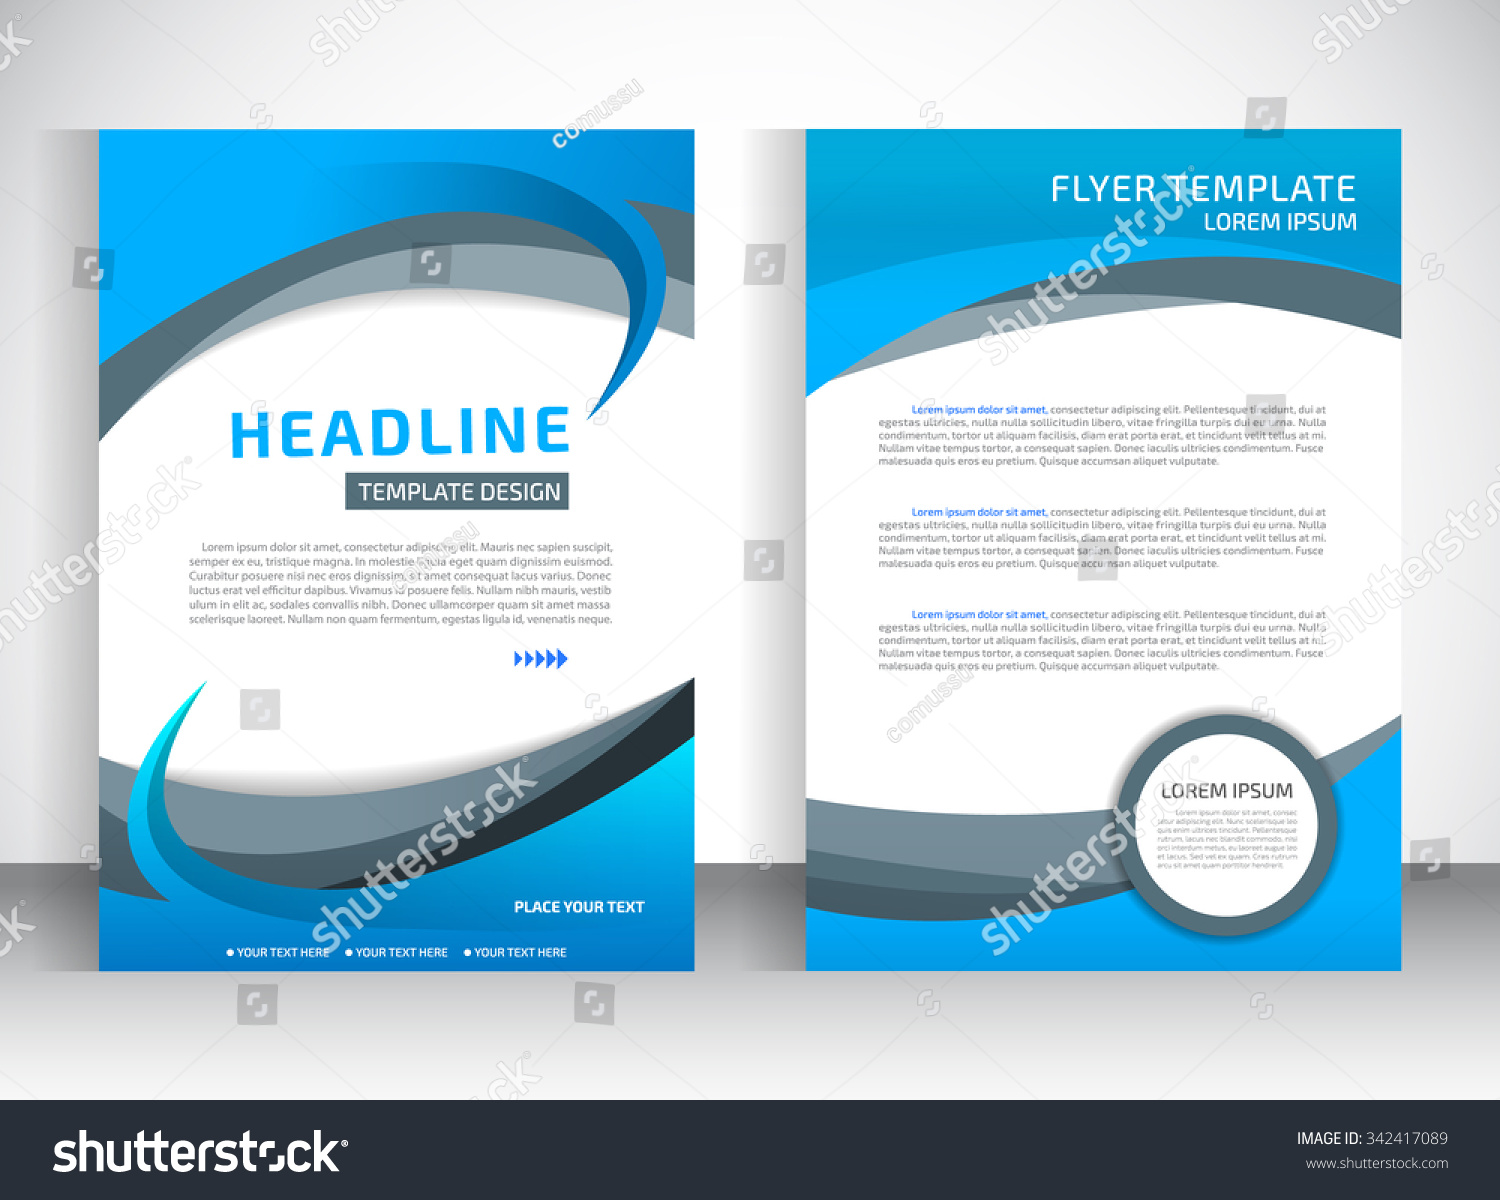 report cover template business presentation brochure stock vector report cover template for business presentation or brochure blue and white material design style vector